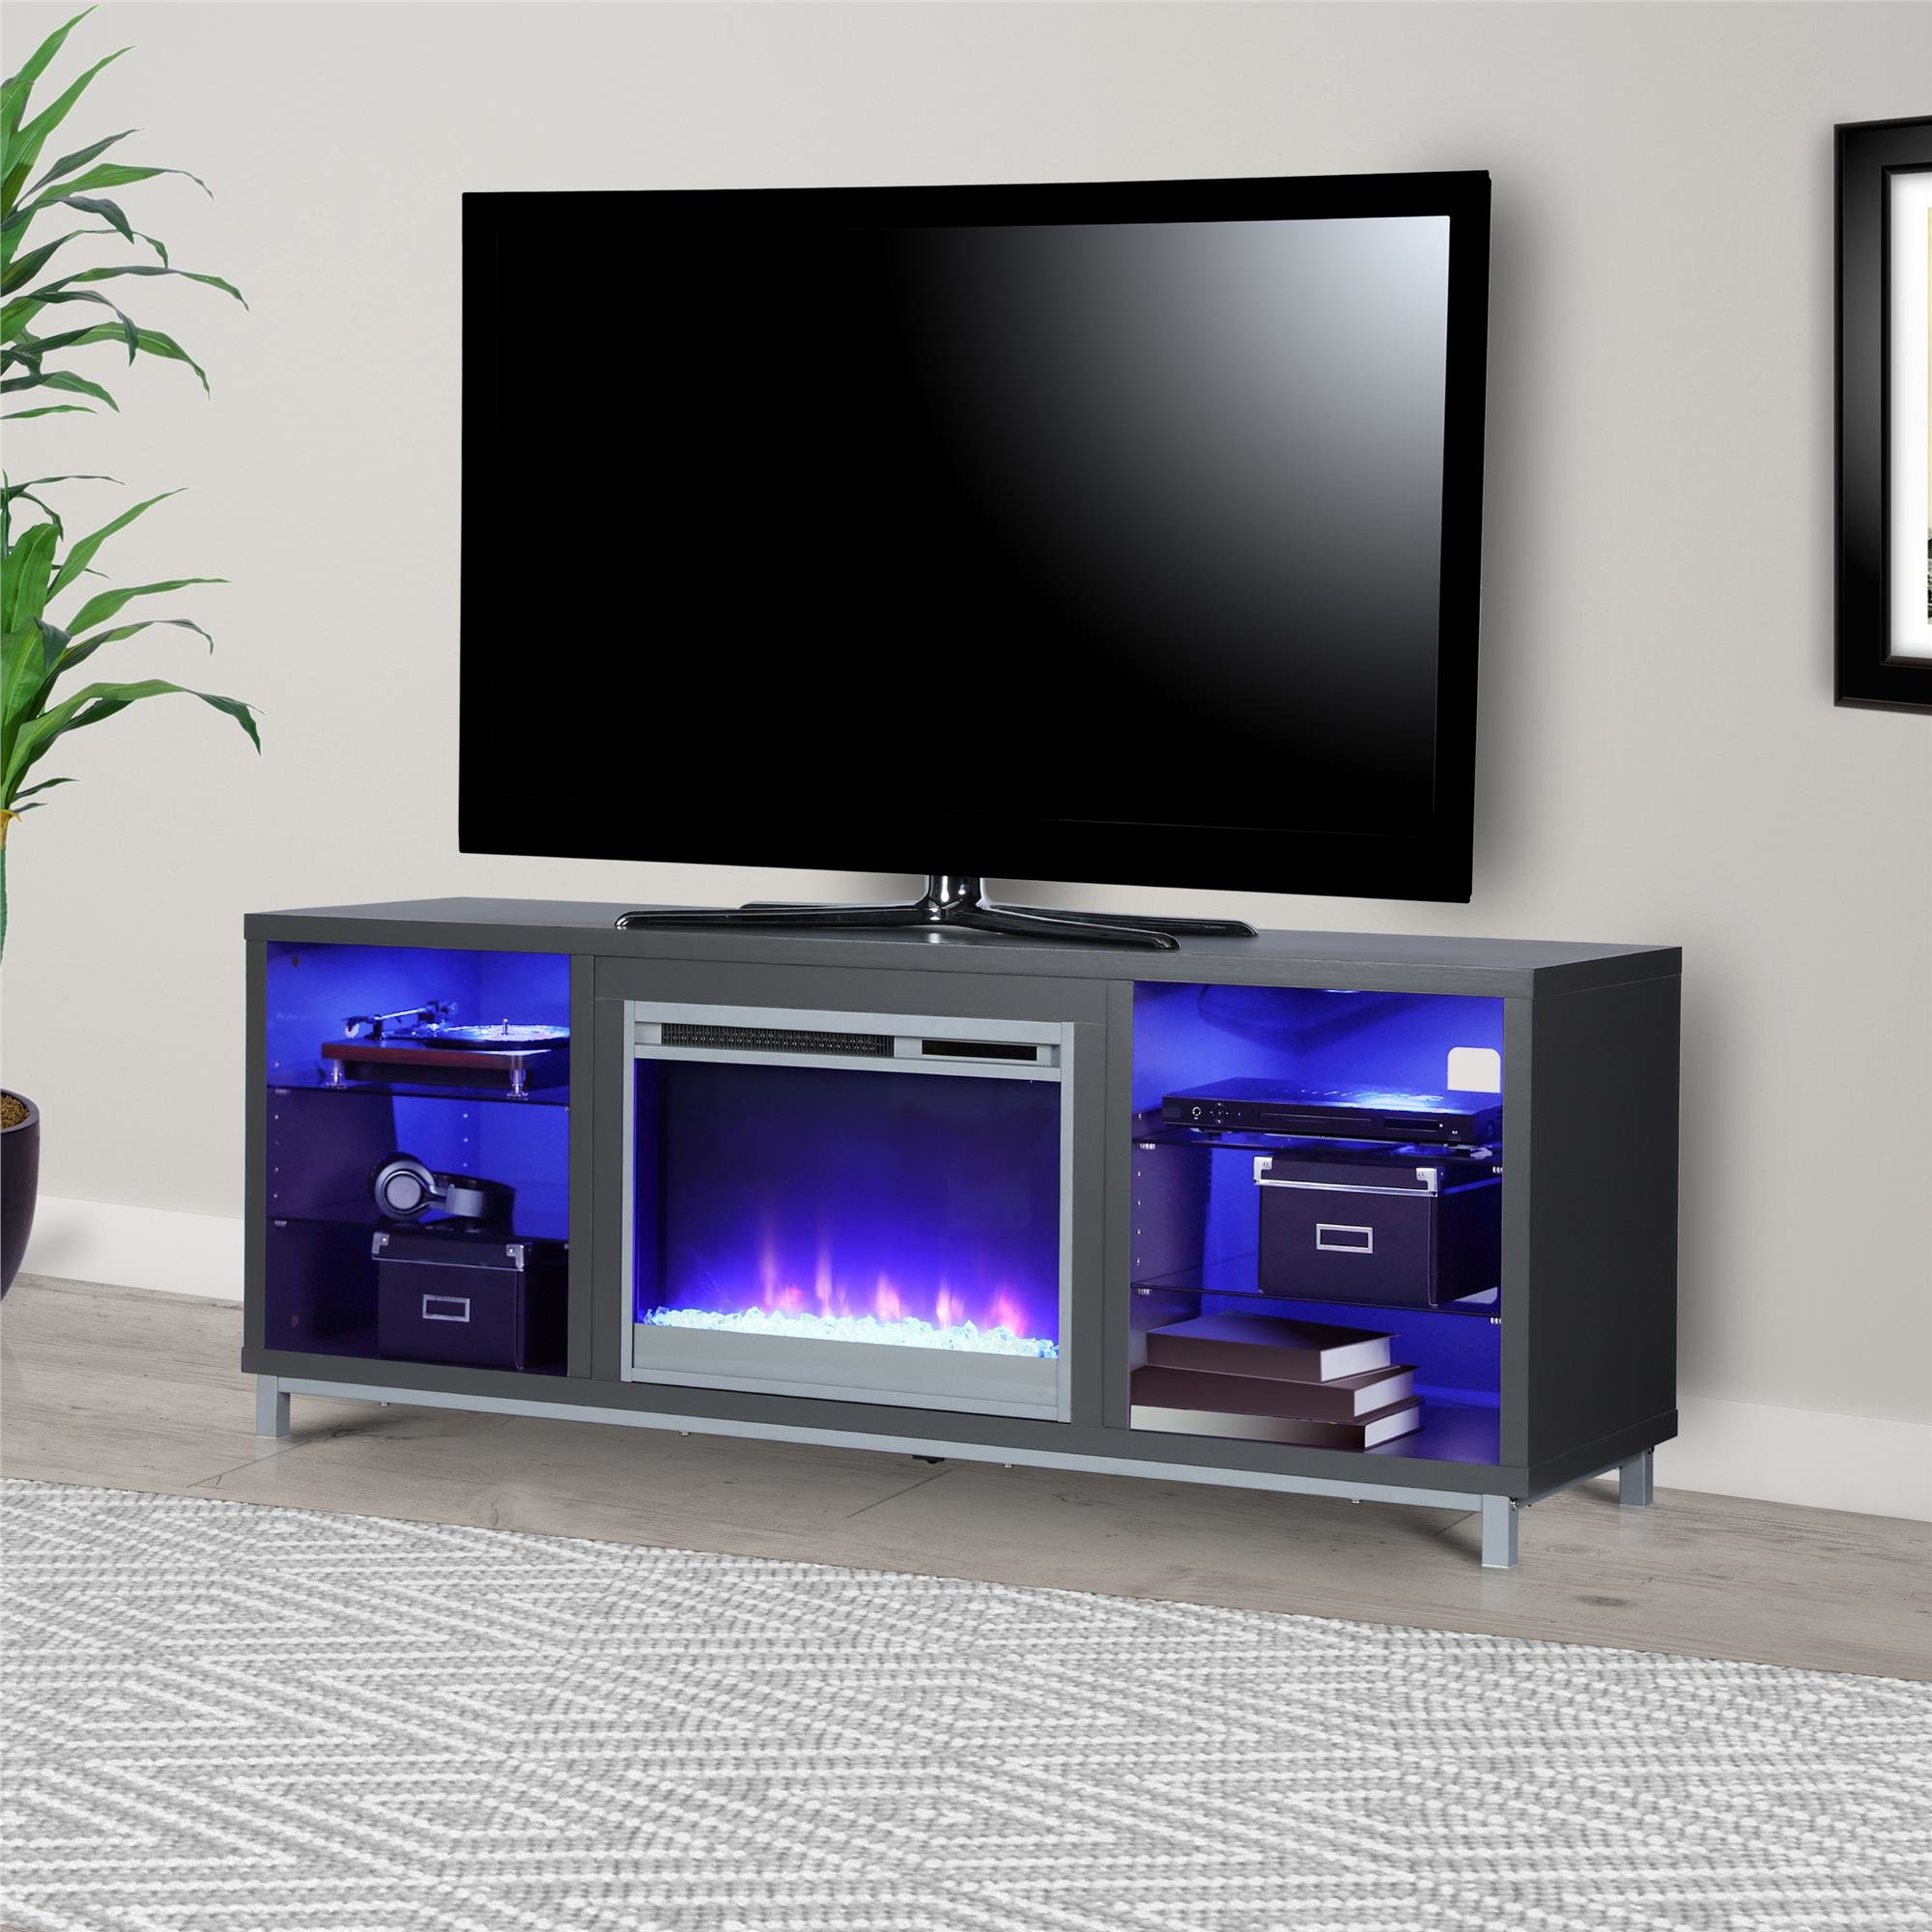 Tv Stands You'll Love | Wayfair.ca with regard to Wyatt 68 Inch Tv Stands (Image 27 of 30)